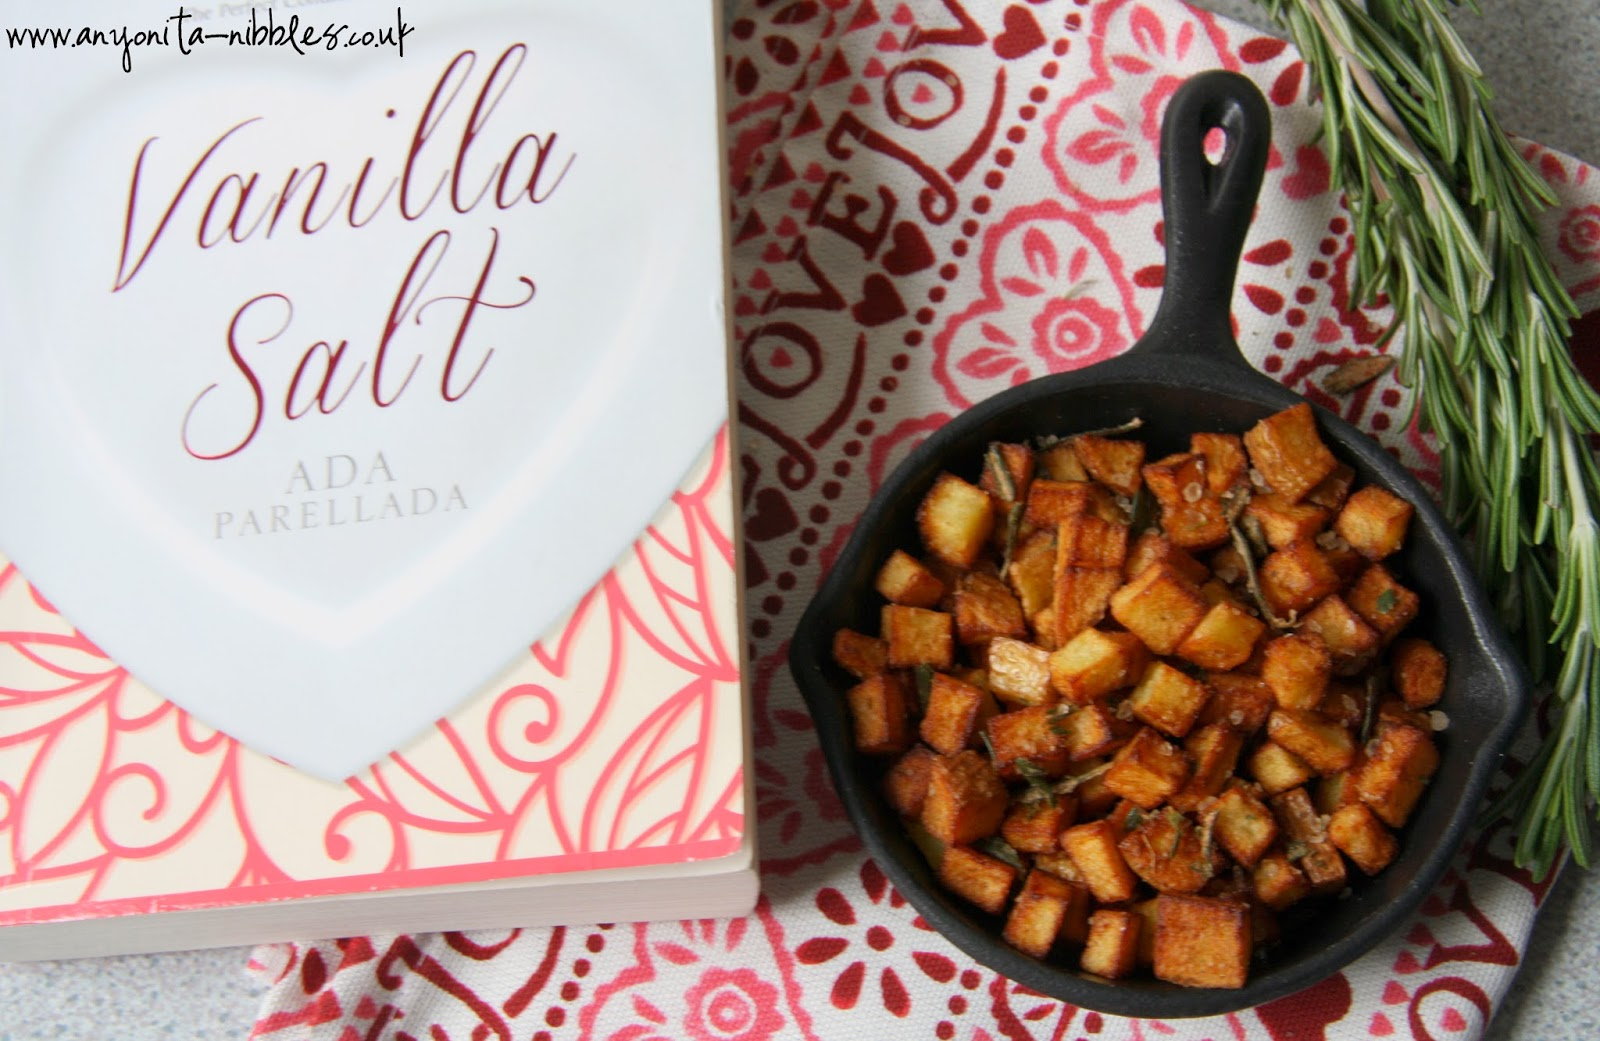 Vanilla Salt by Ada Parellada and rosemary breakfast potatoes from Anyonita Nibbles #book